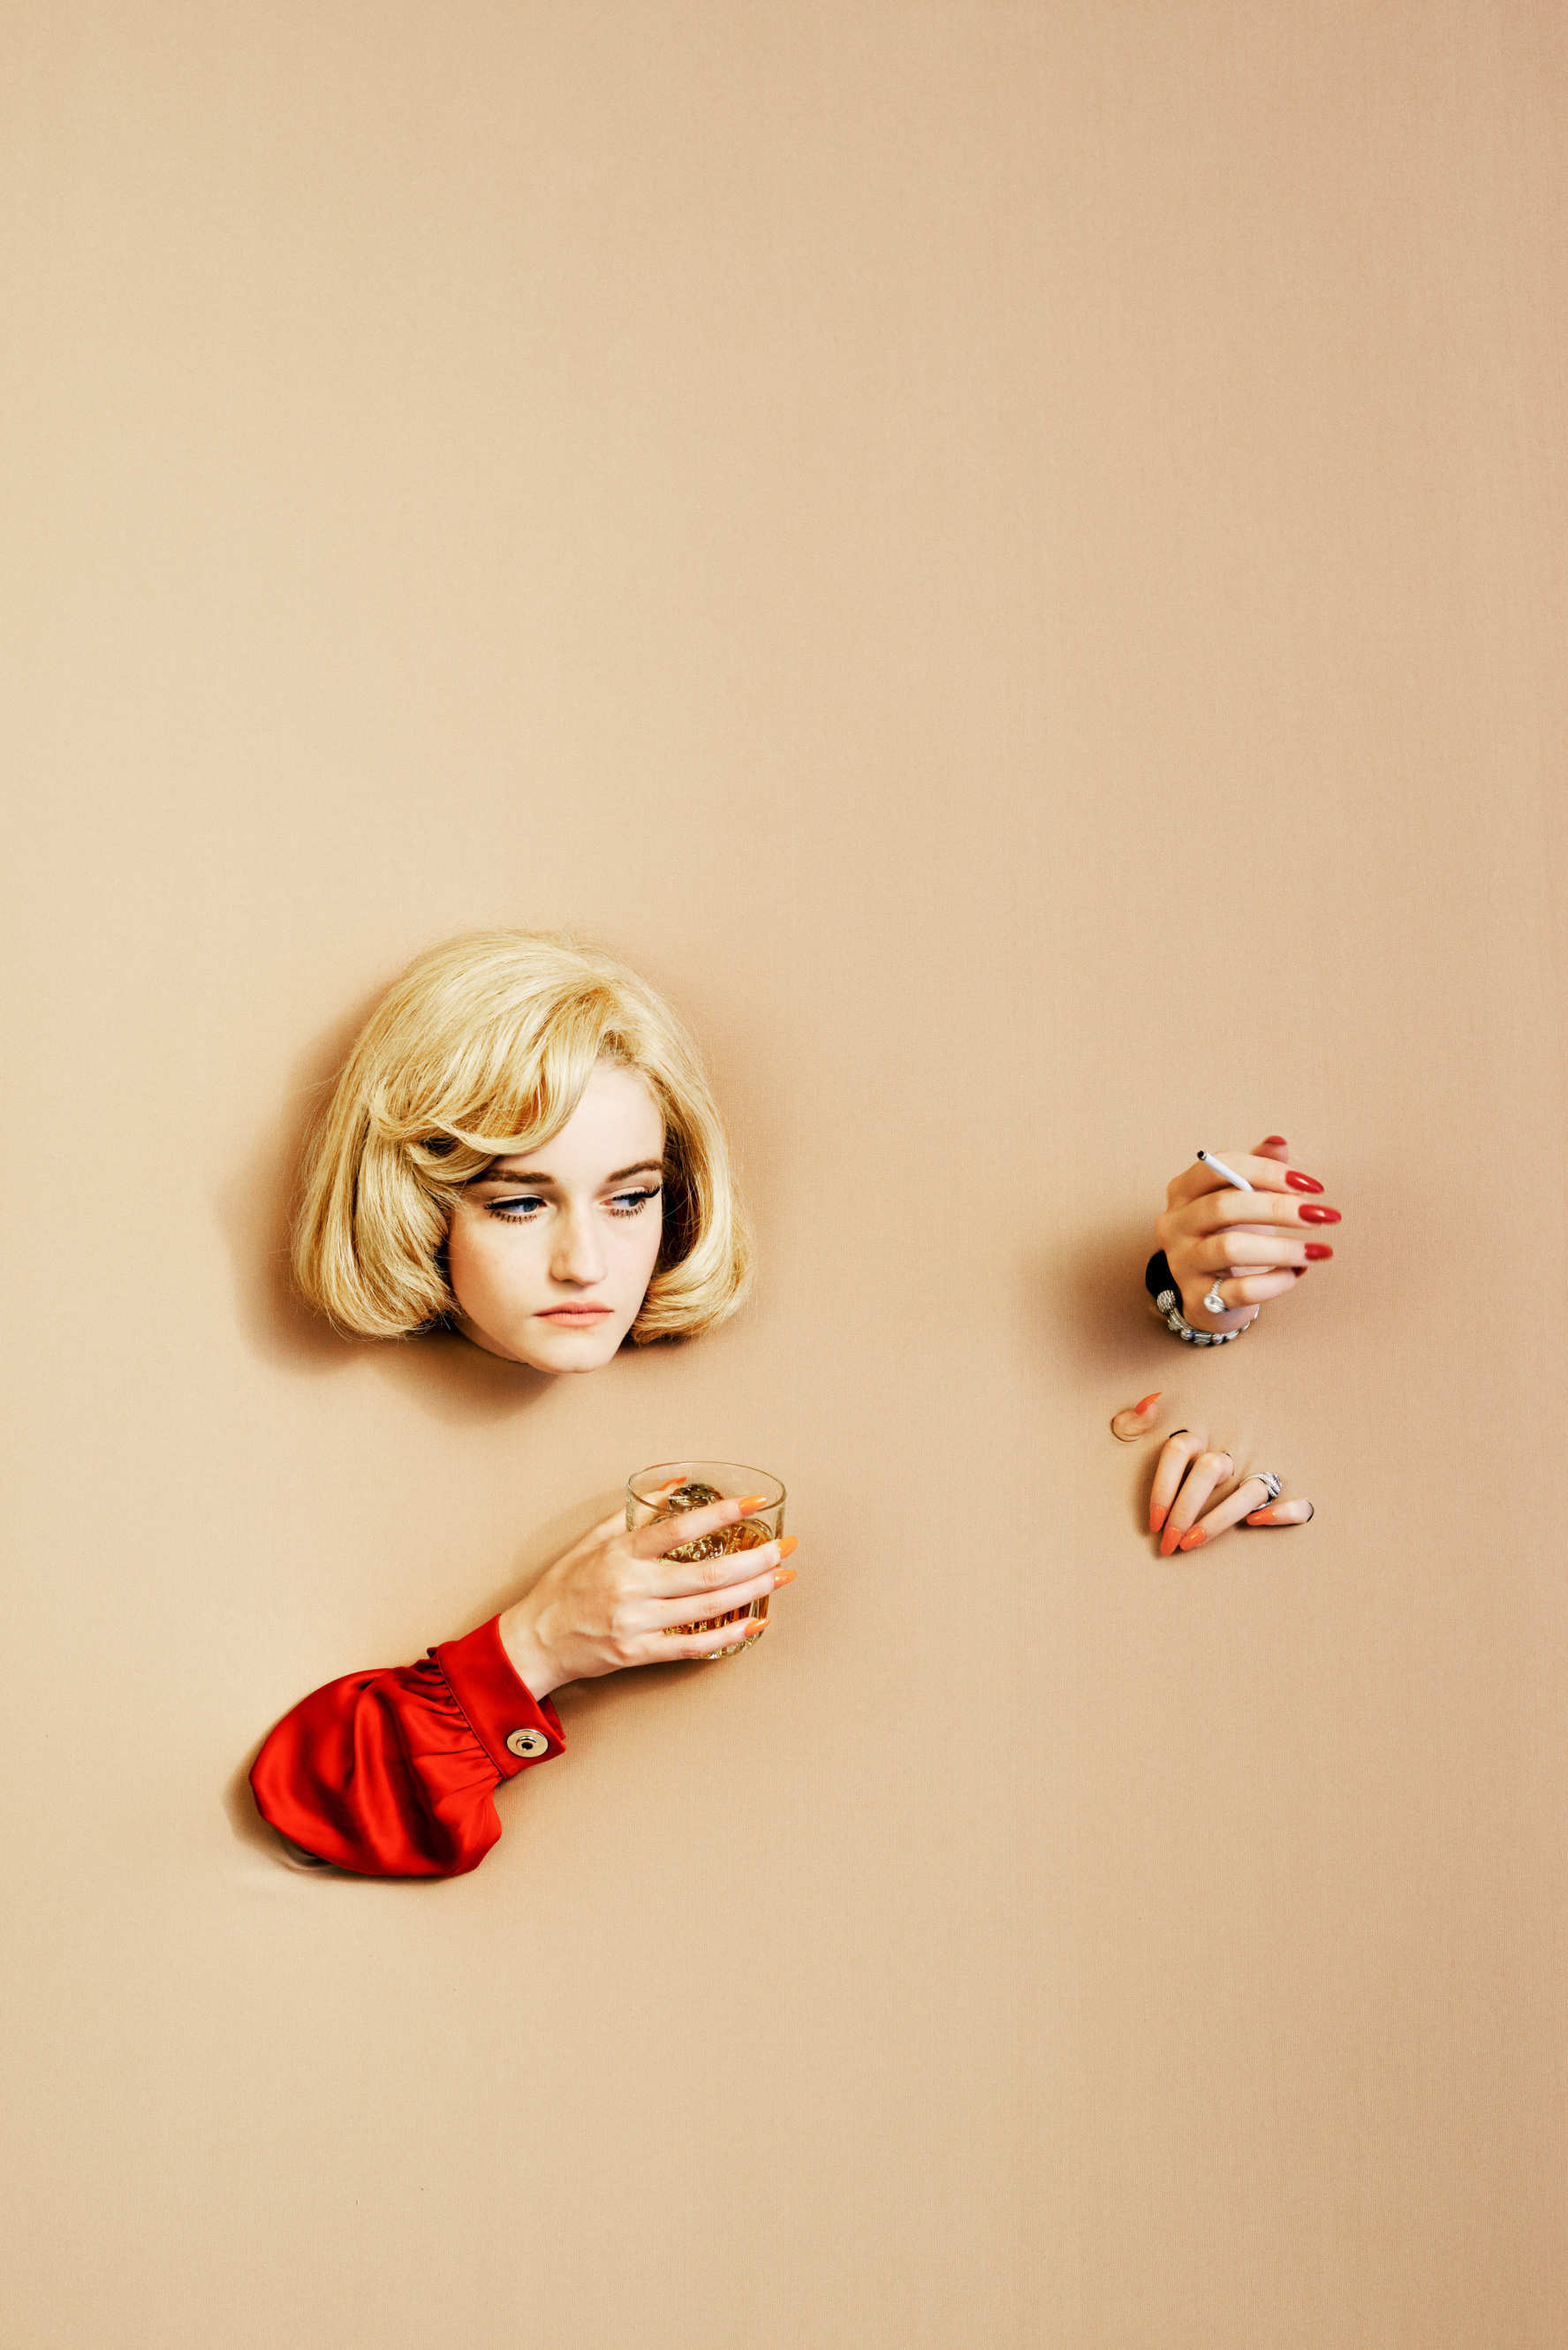 1 ALEX PRAGER :: GARAGE MAGAZINE